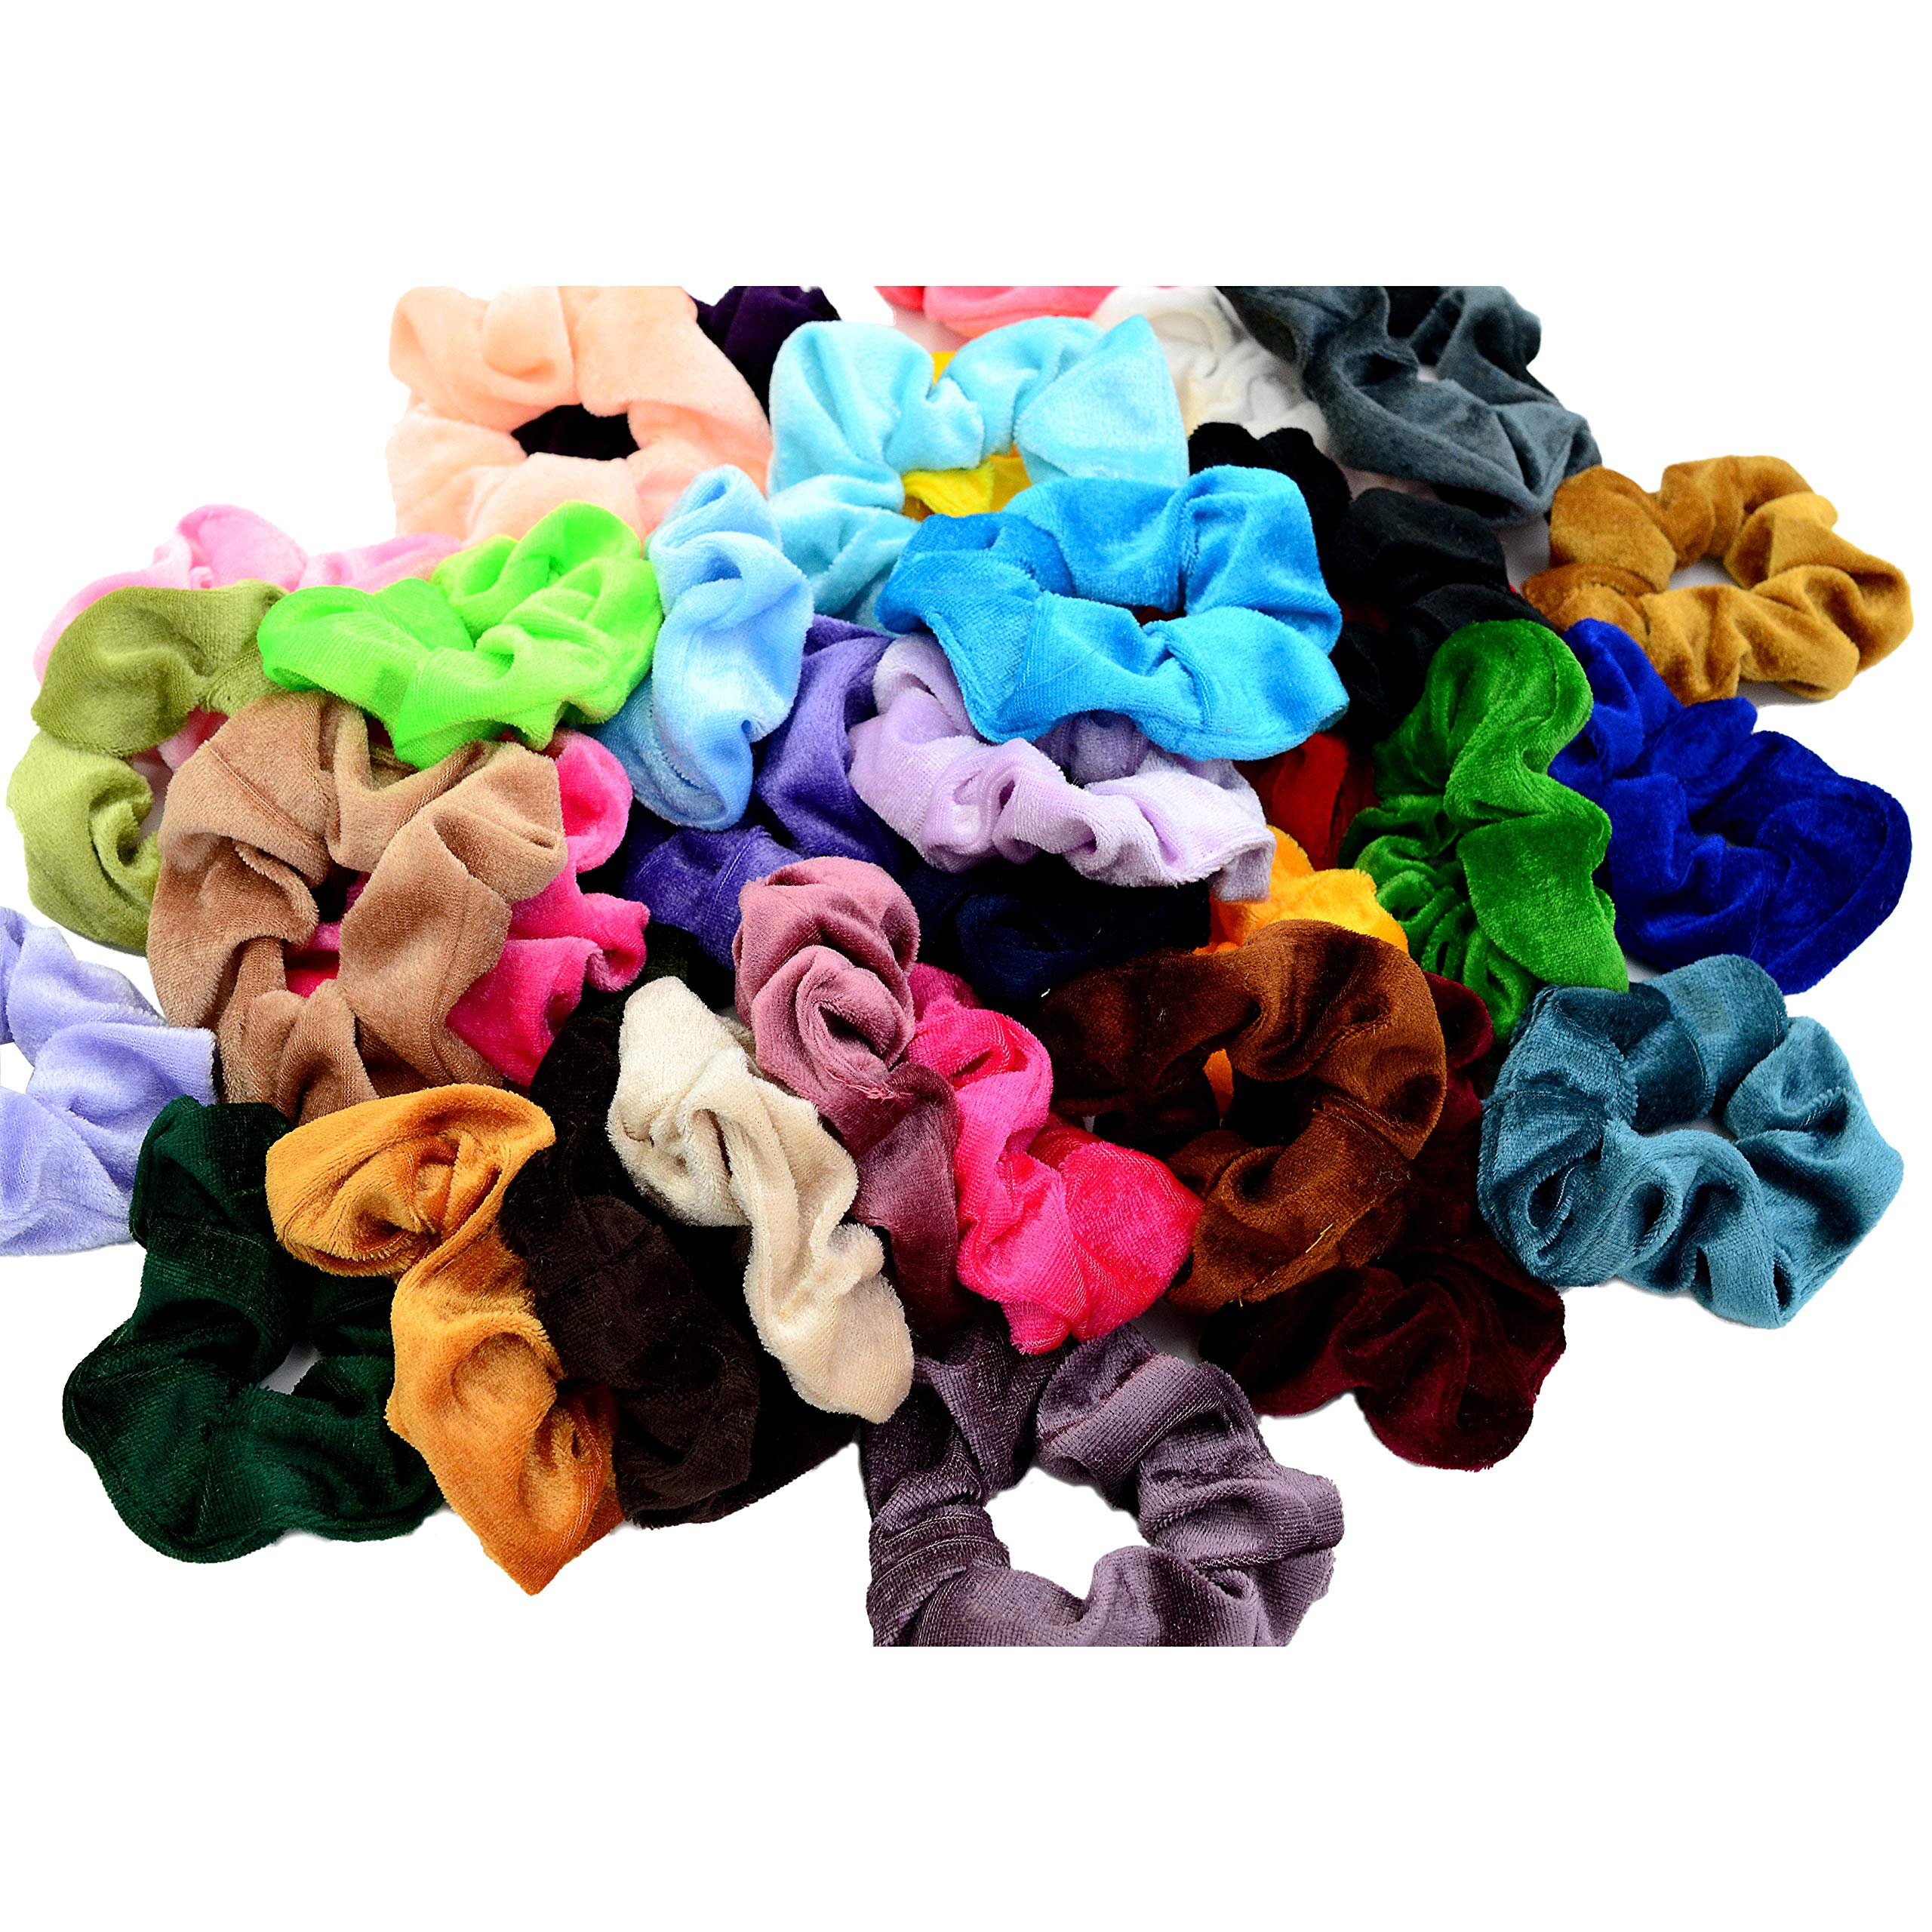 Chloven 45 Pcs Hair Scrunchies Velvet Elastics Bobbles Hair Bands Scrunchy Hair Ties Ropes Scrunchie for Women Girls Hair Accessories- 45 Assorted Colors Scrunchies by Chloven (Image #1)